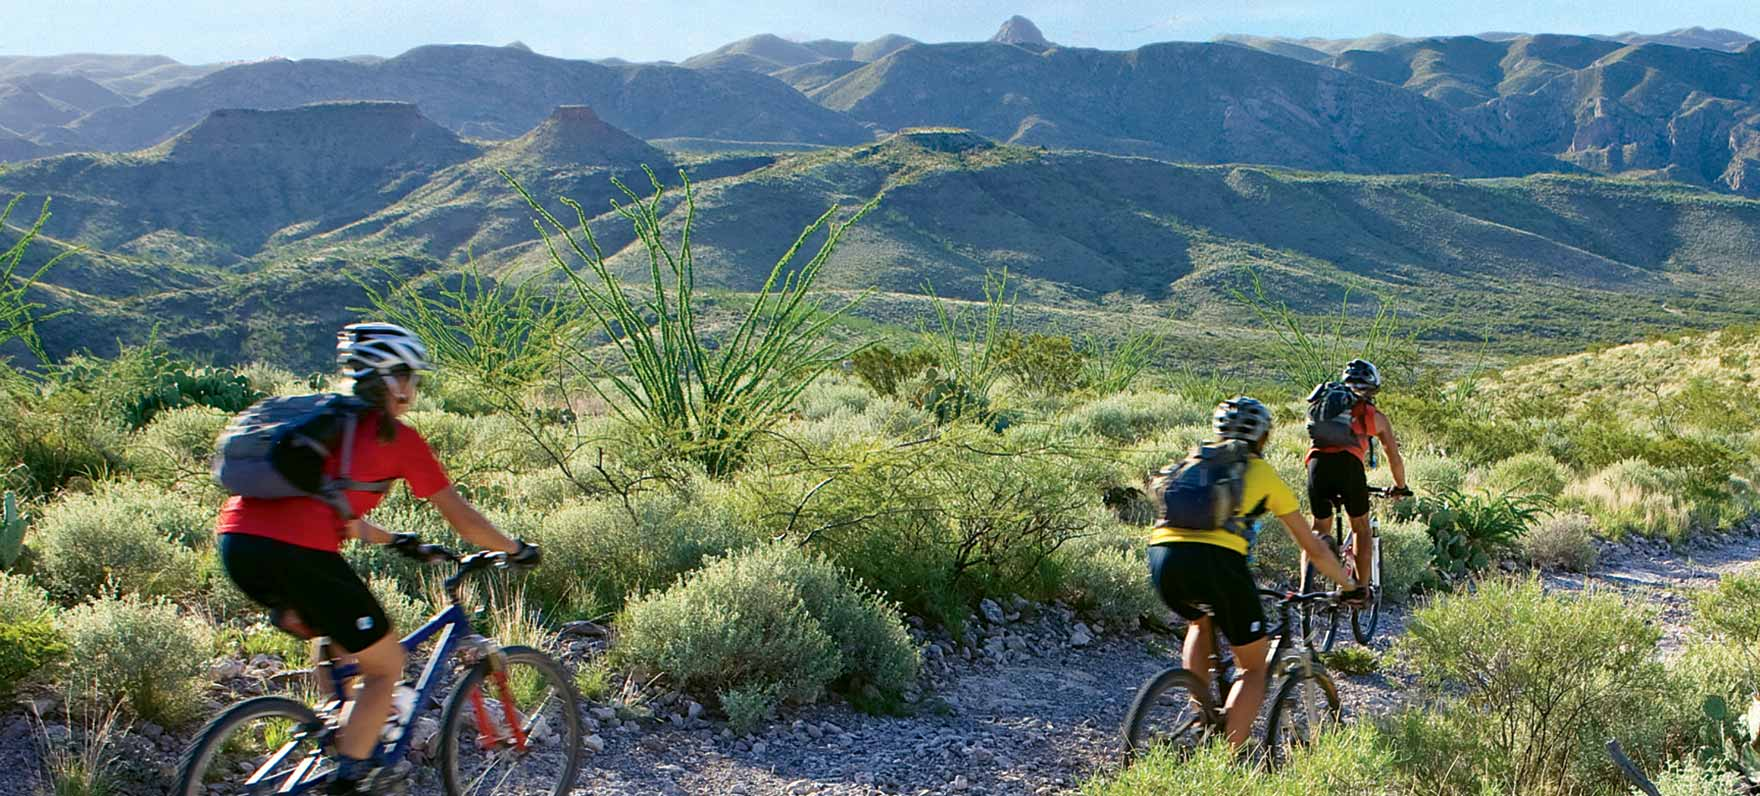 Big Bend mountain biking